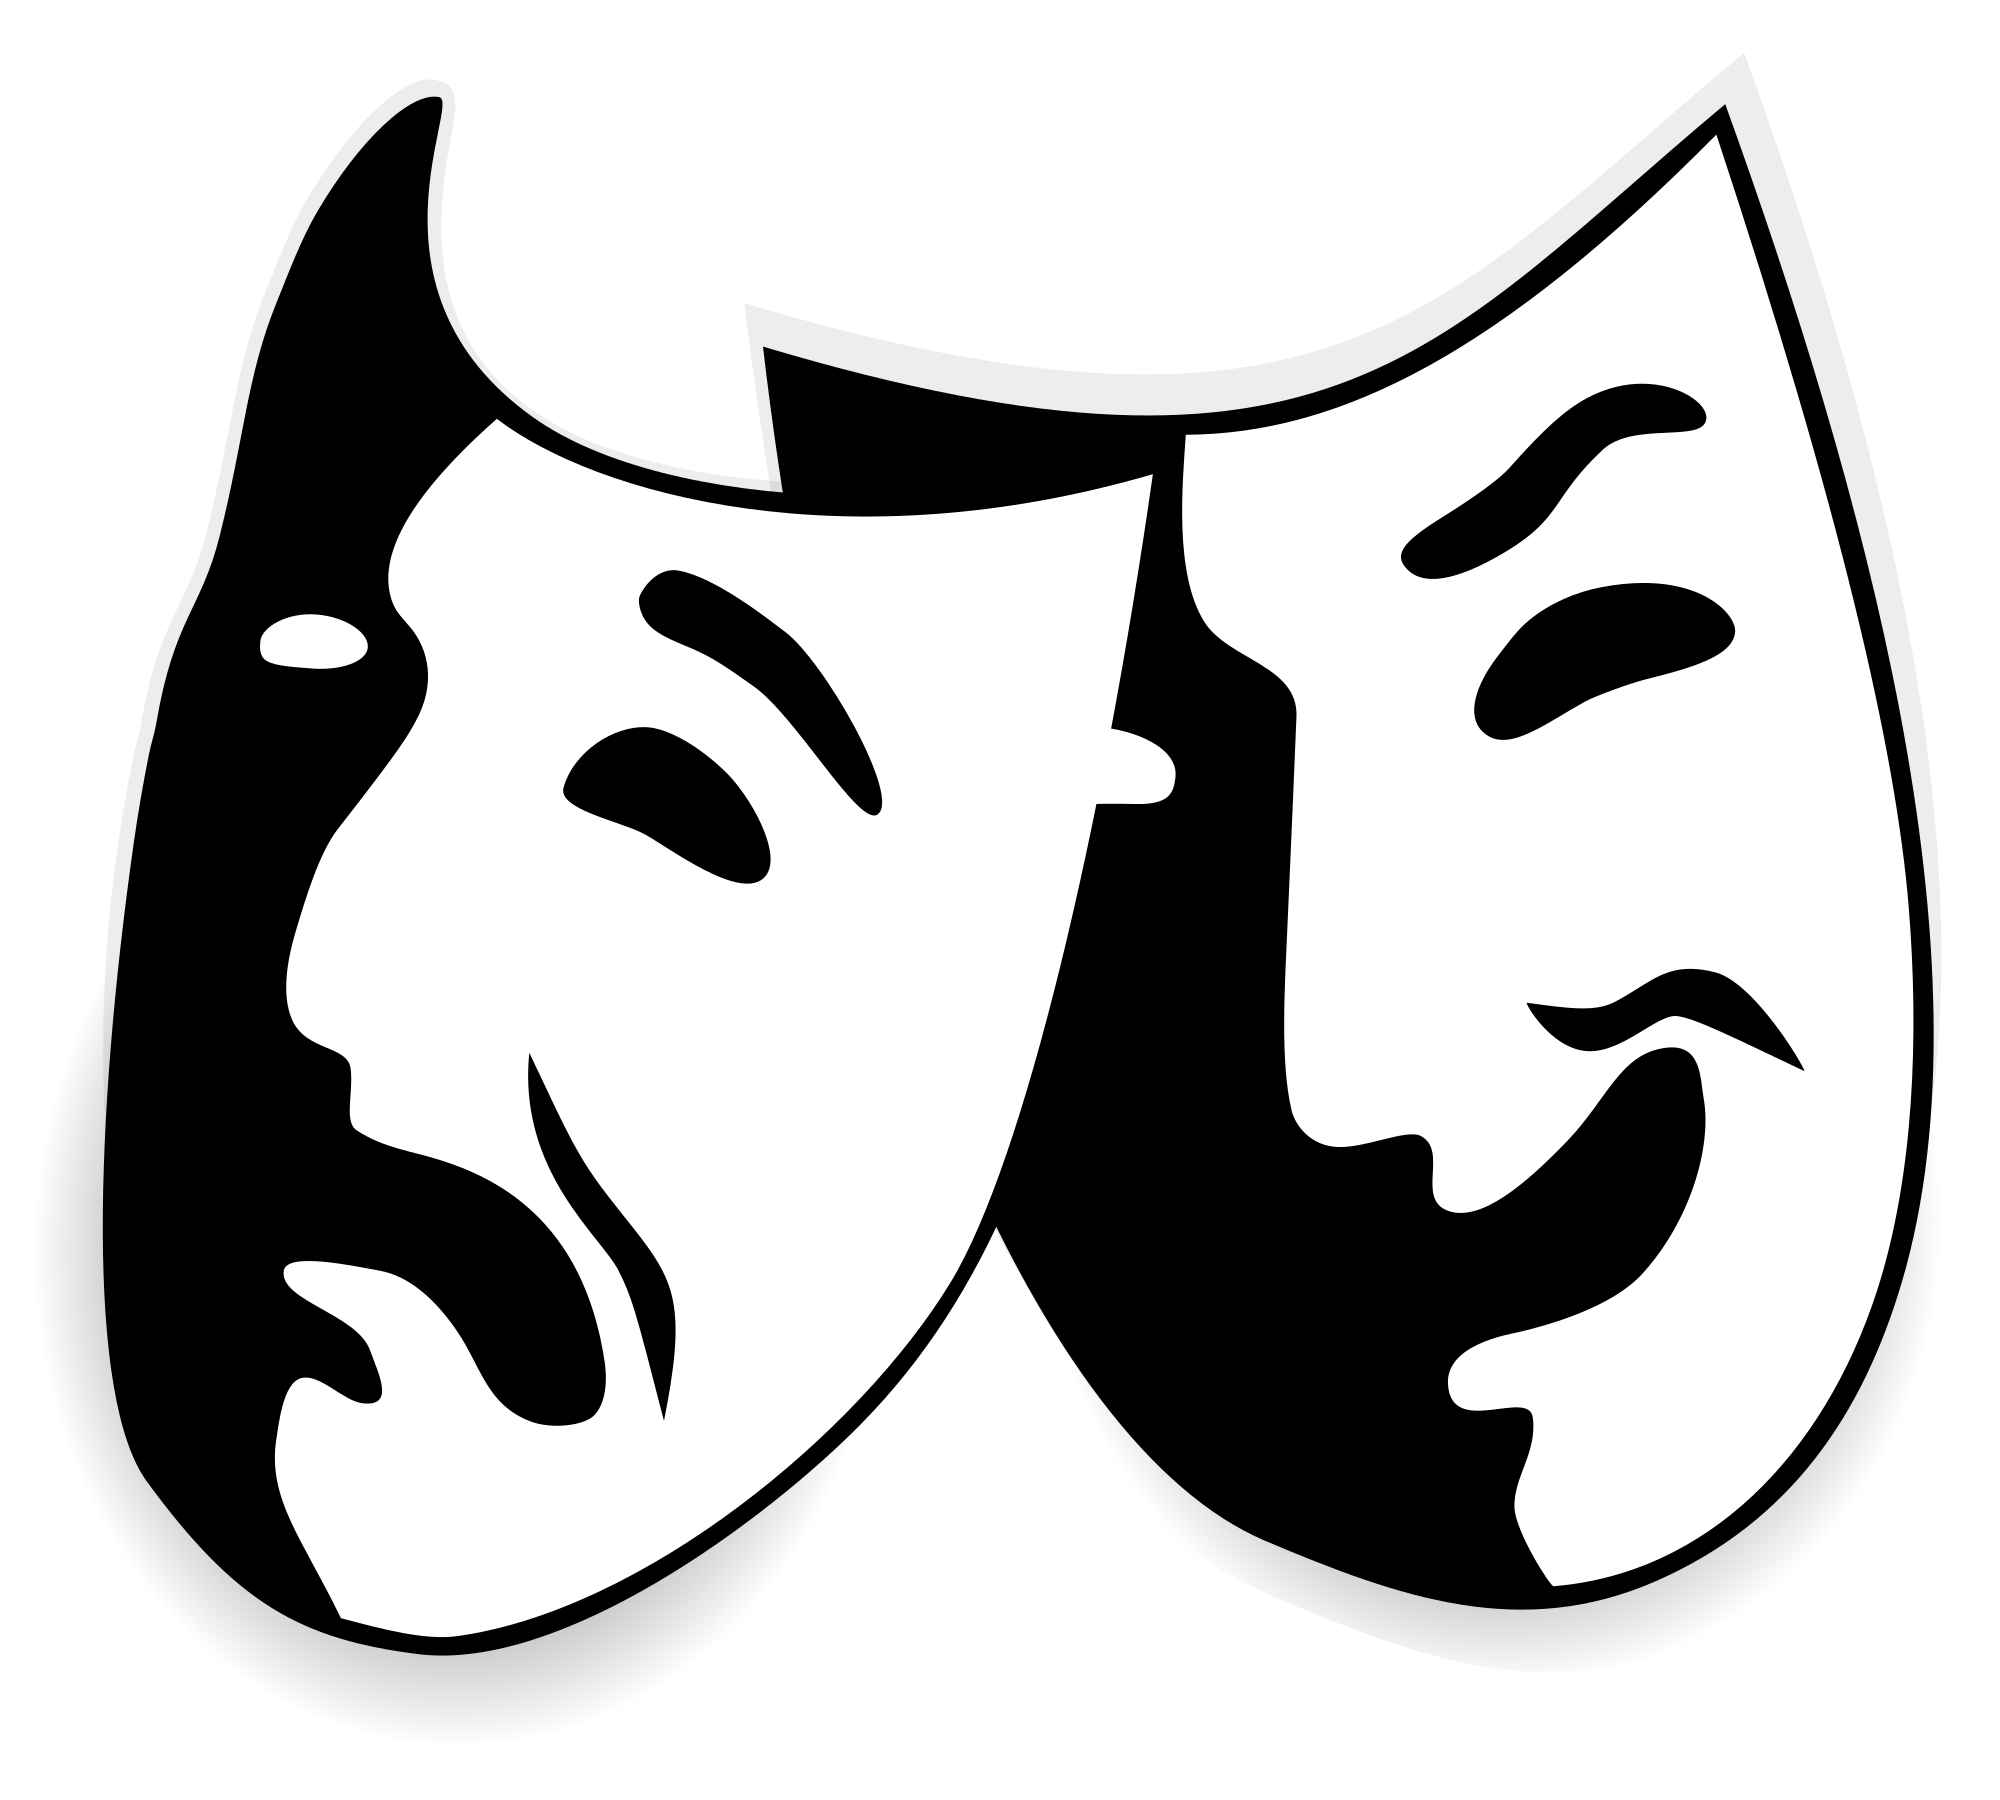 File comedy and tragedy. Drama mask png picture transparent